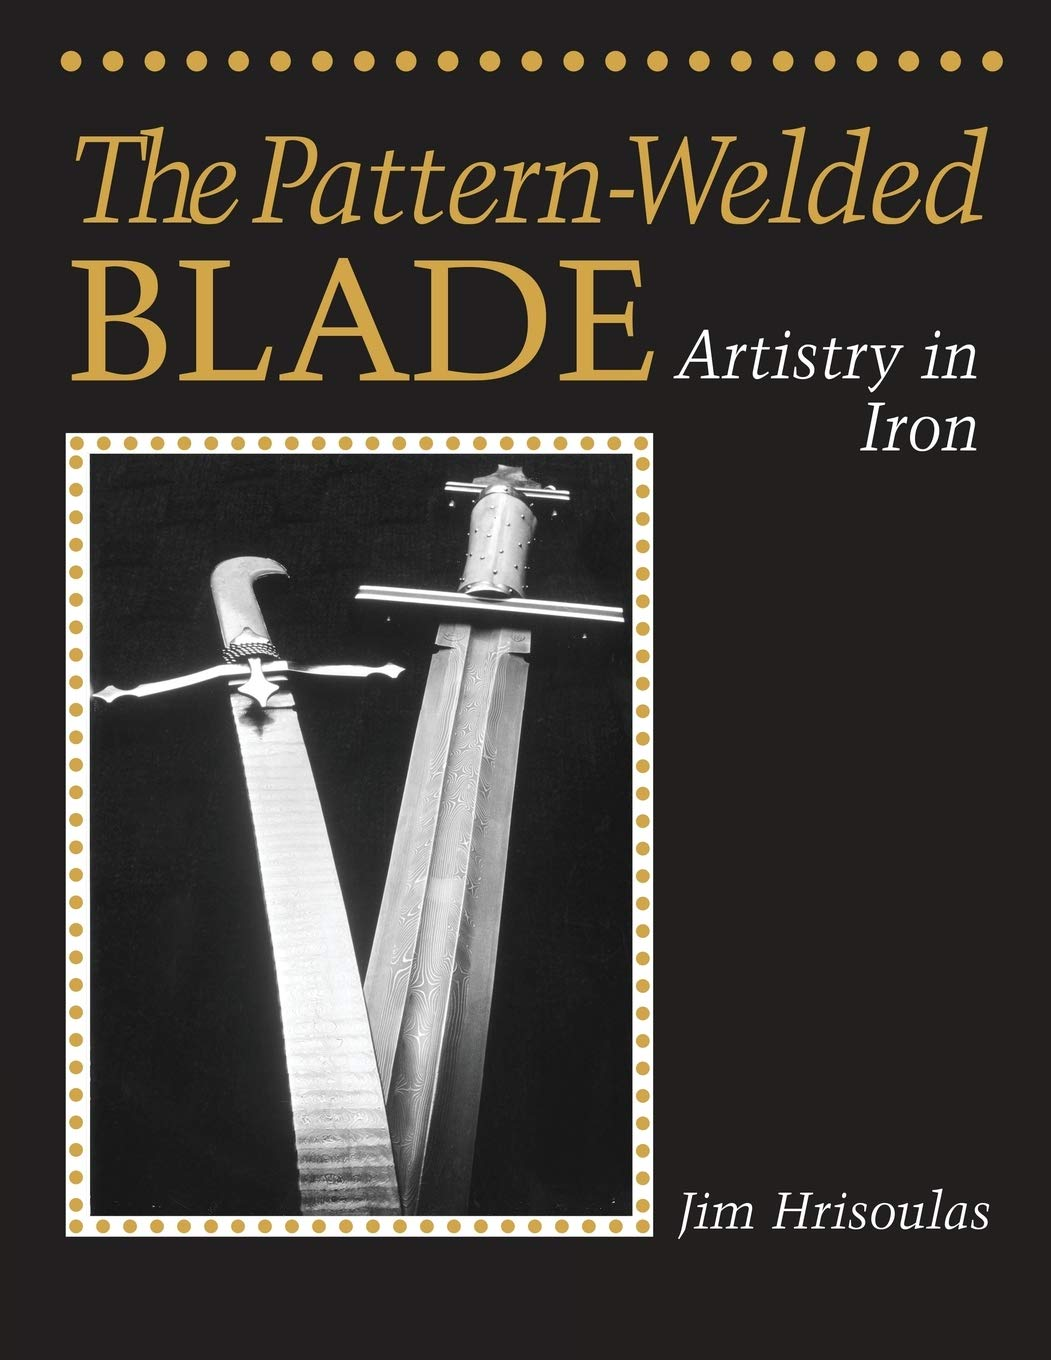 The Pattern Welded Blade: Artistry in Iron